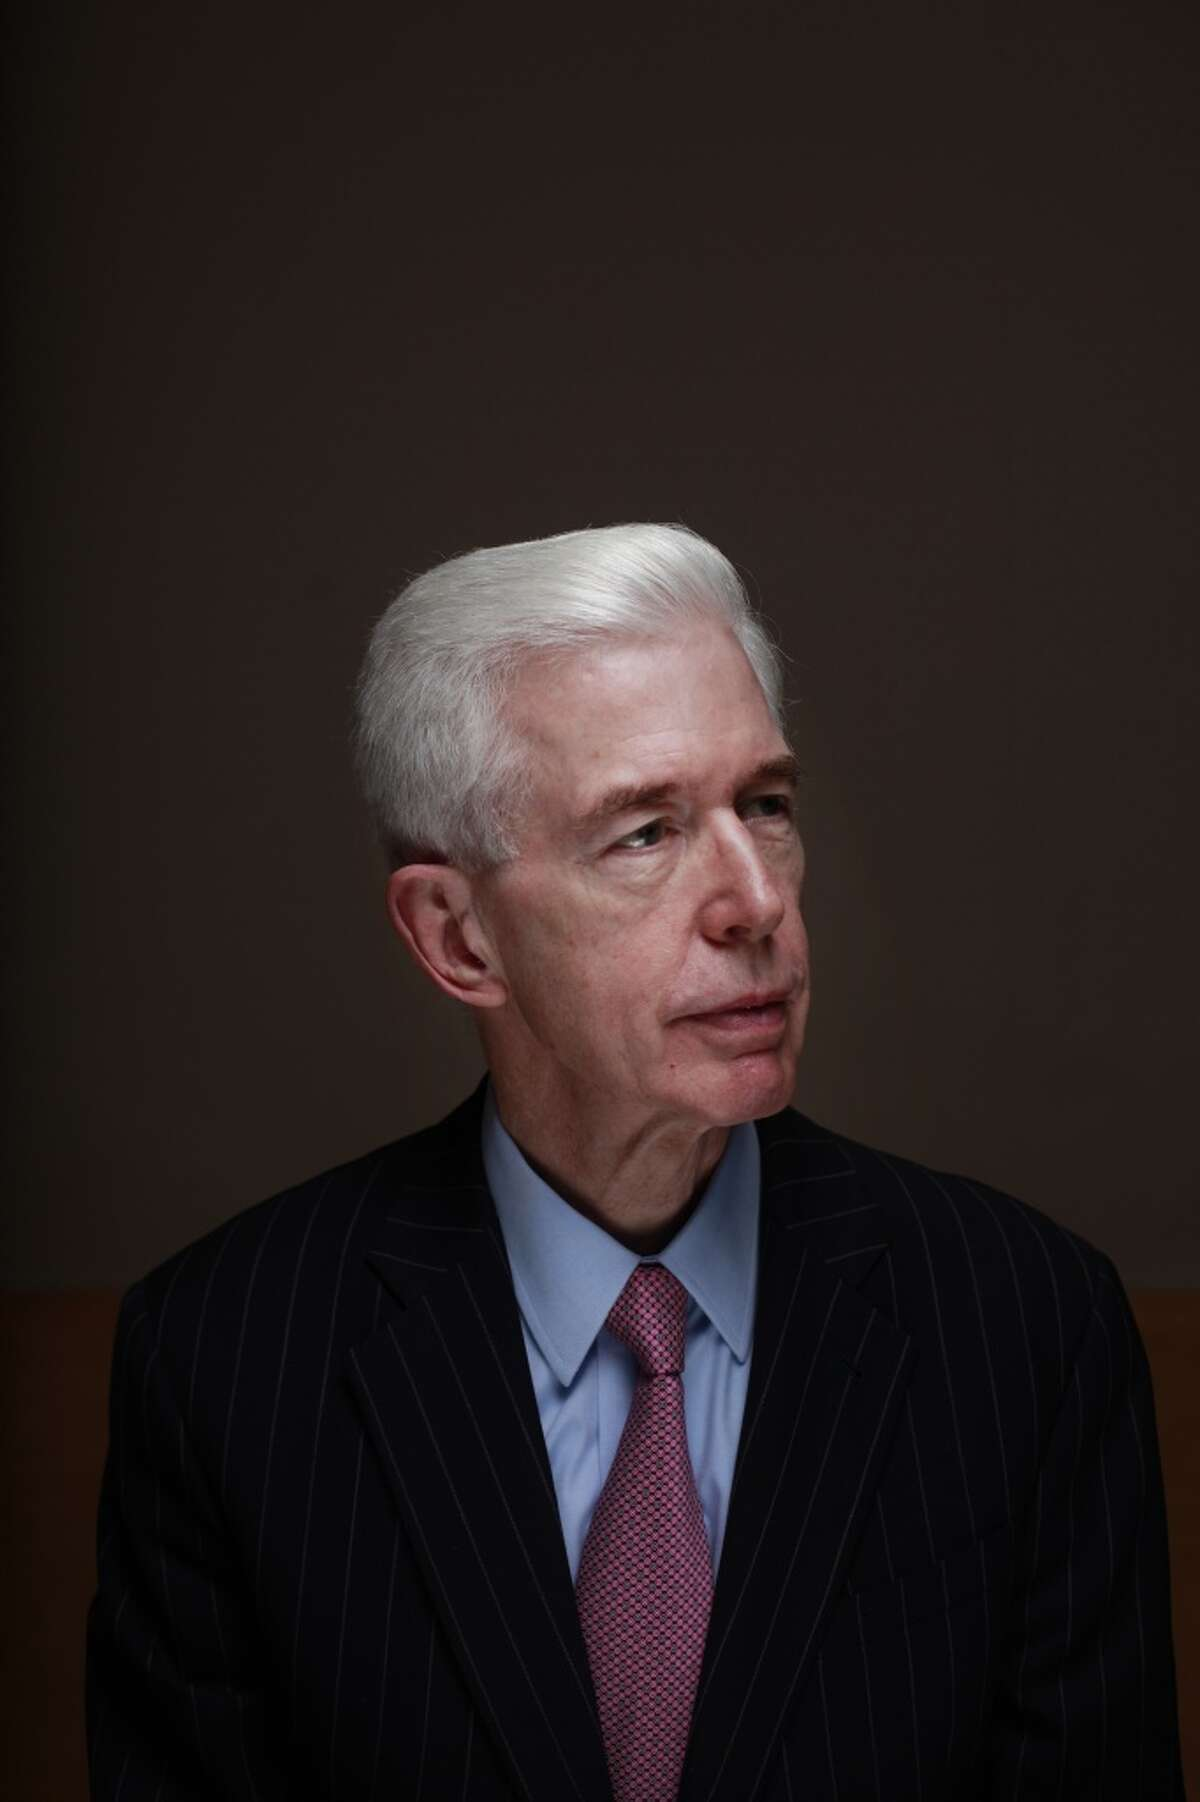 """Gray Davis - The unseated governor Gray Davis underused his best surrogate in the recall campaign: TV star Cybill Shepherd. They hooked up decades early and Cybill said Gray was 'a great kisser."""" Yes, THAT Gray Davis. CA Recall Flashback: Gray Davis"""